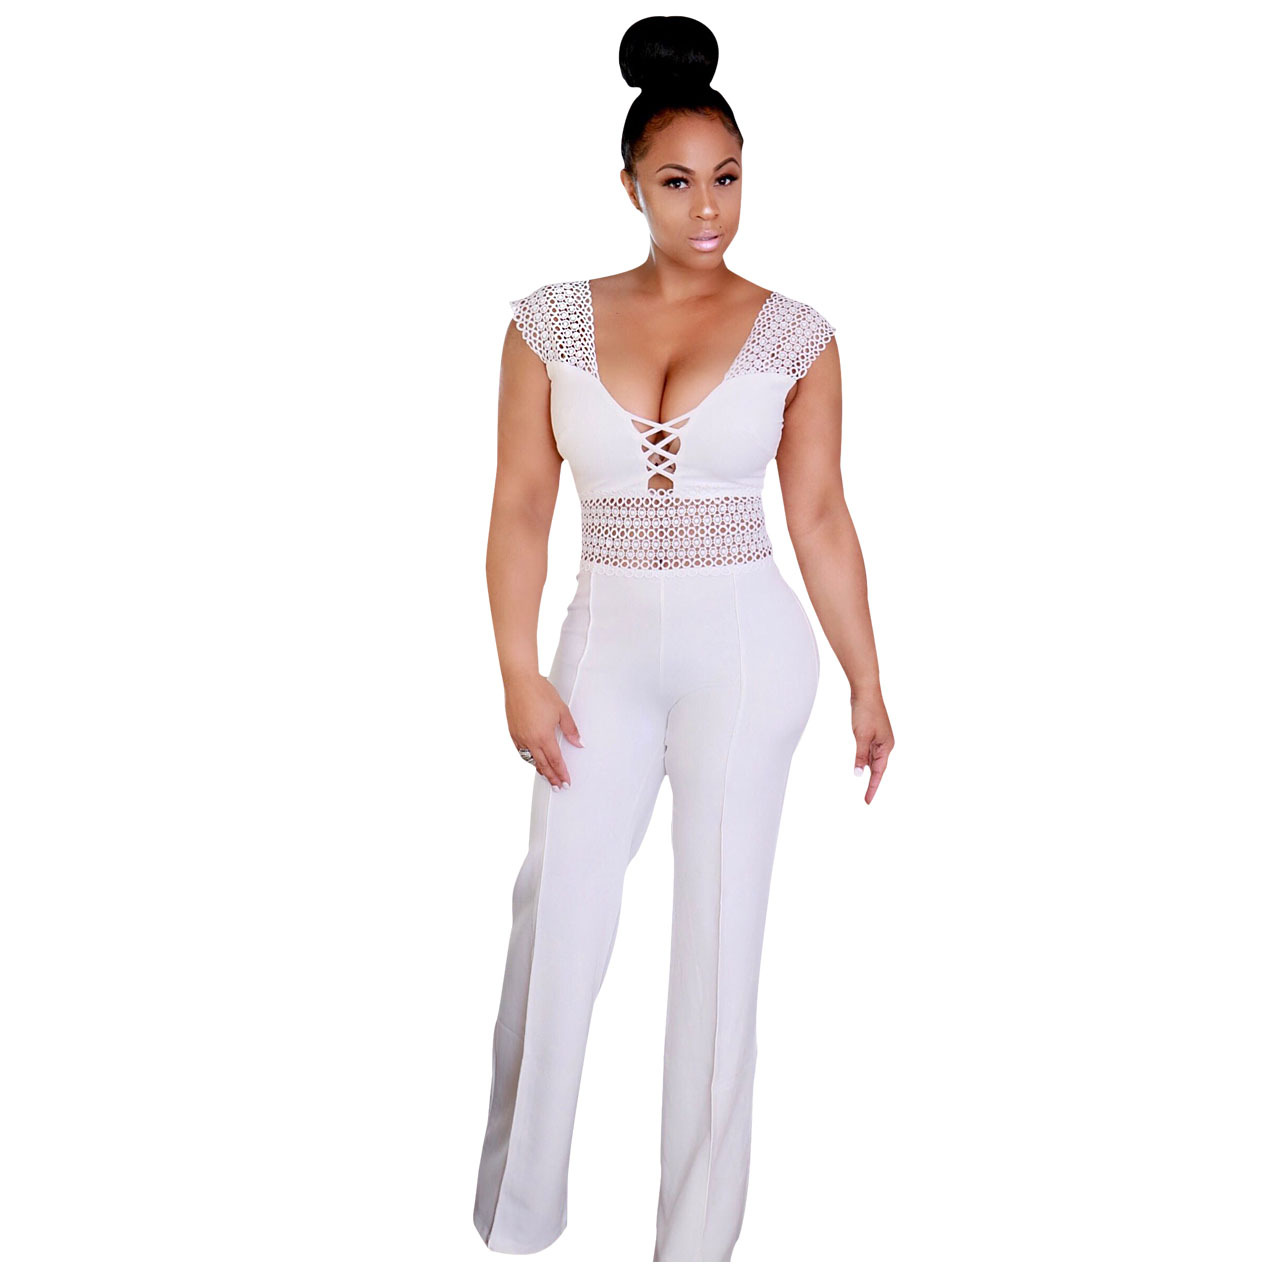 Genuo Women Lace Hollow Out Sexy Jumpsuit Patchwork Sleeve Cut Rompers High Waist Zipper Sleeveless Bodysuits Club Wear